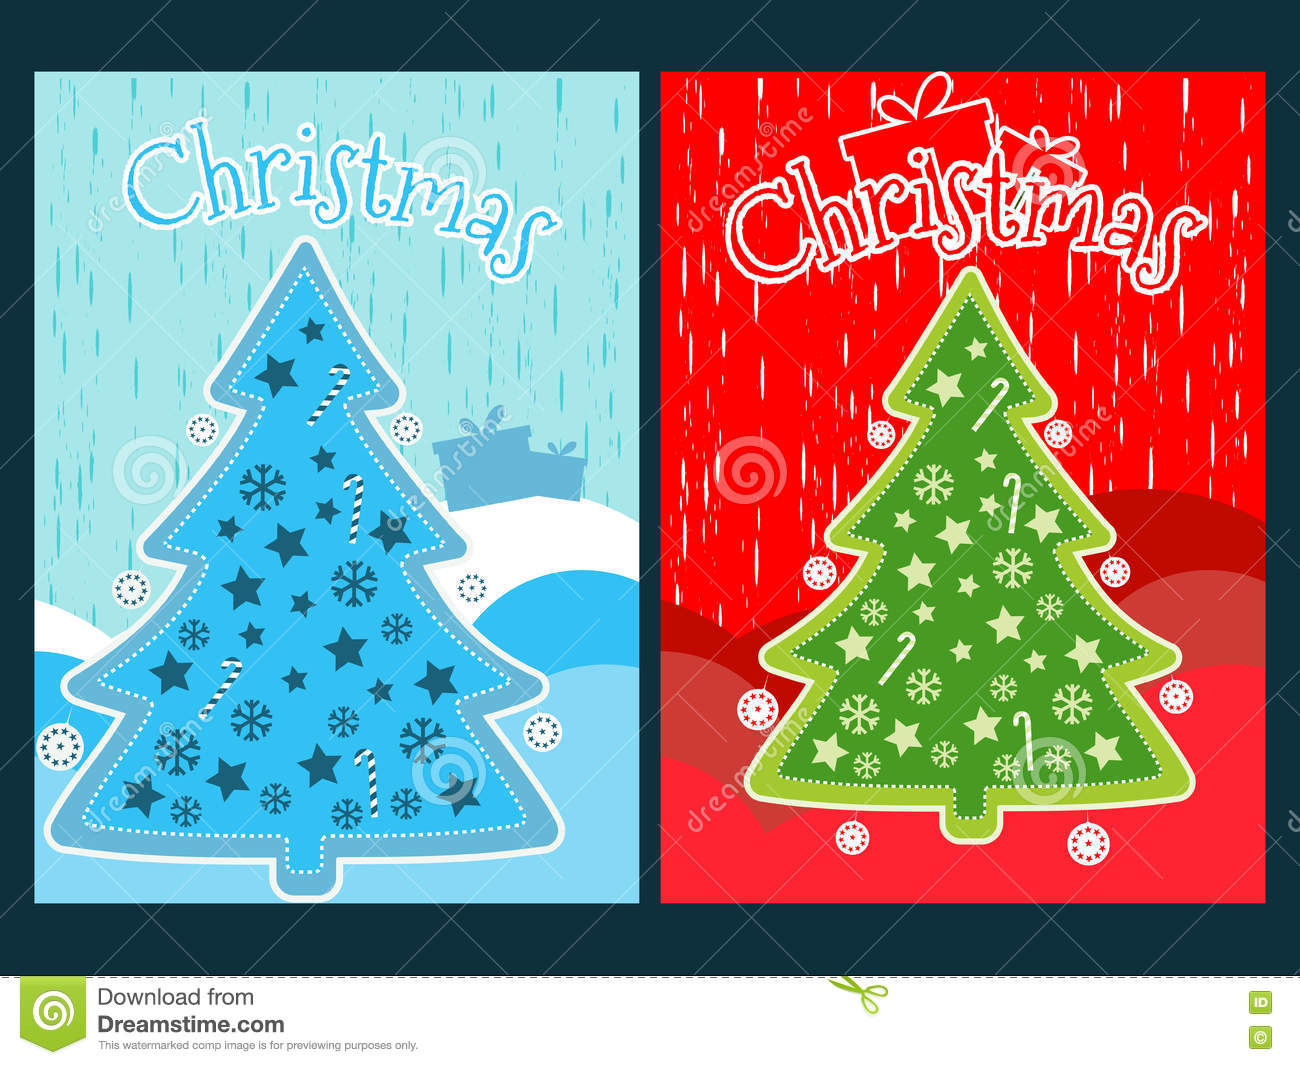 Christmas poster with a Christmas tree and ornaments. New Year celebration collage.